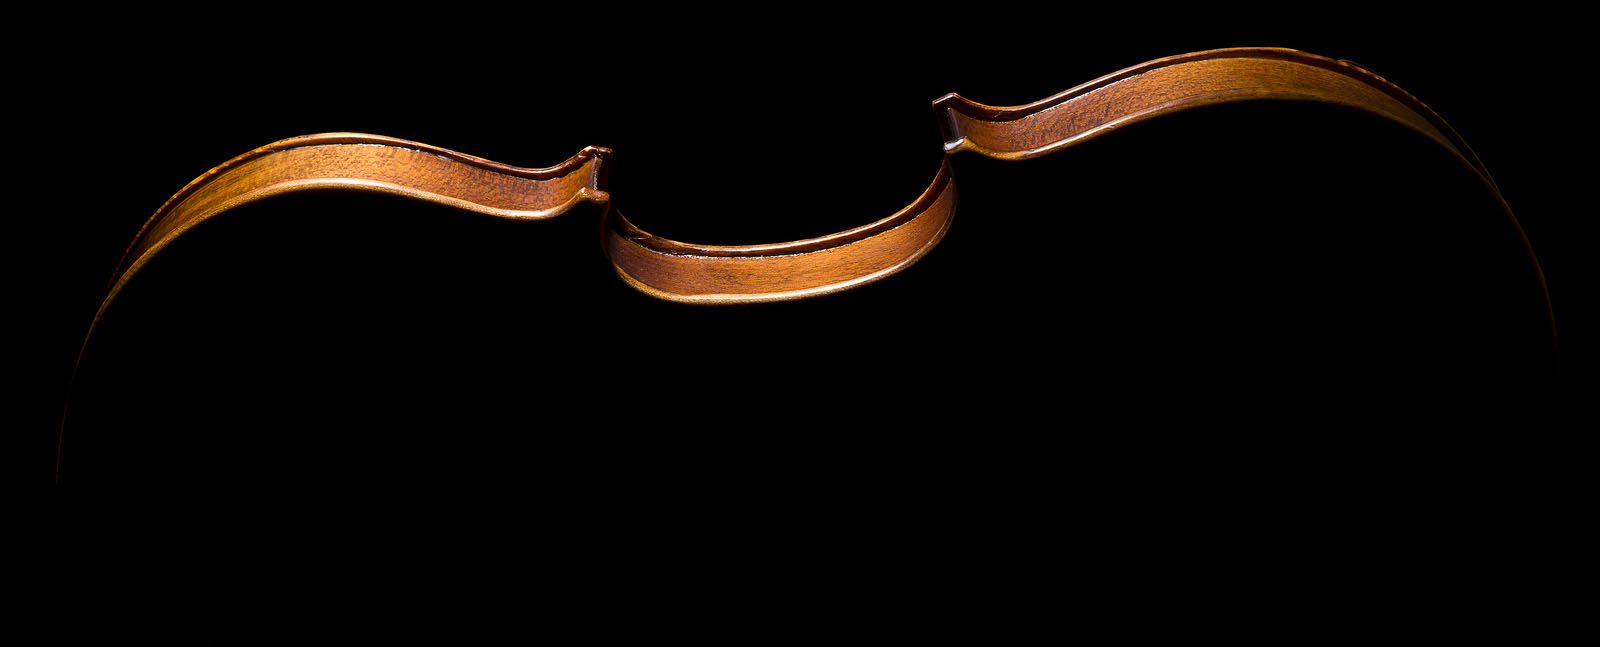 footer image of violin on its side